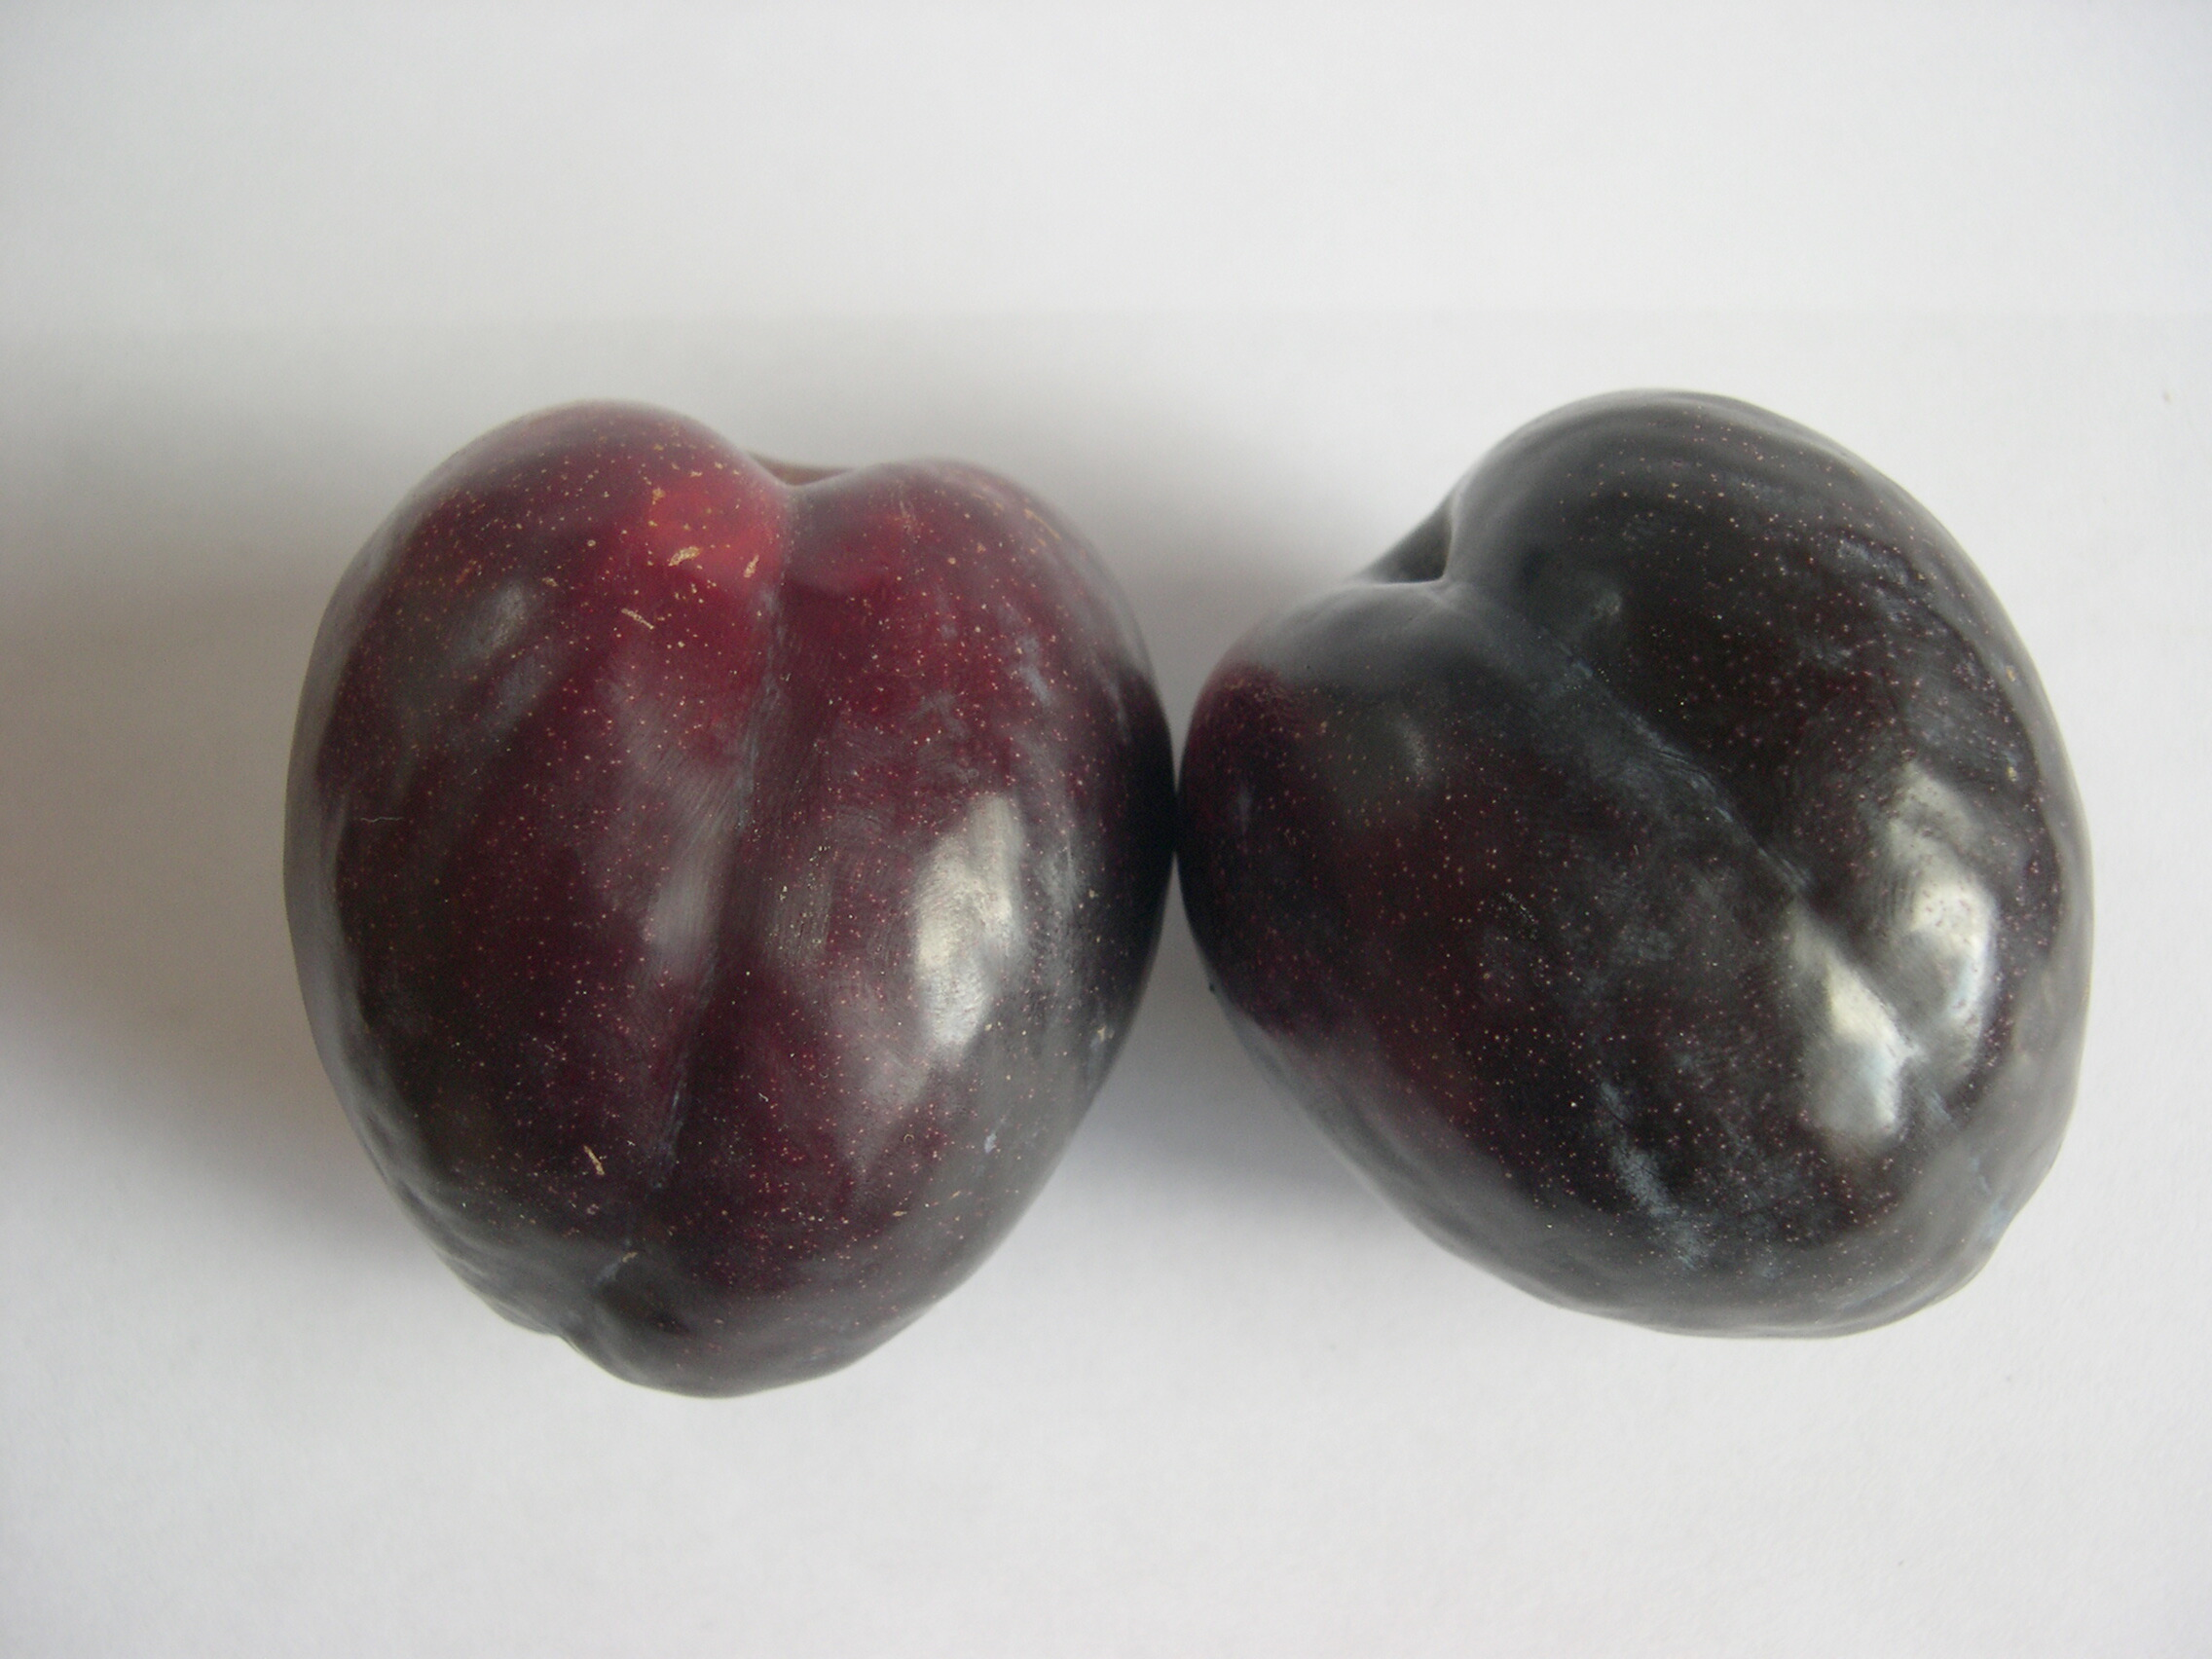 PLUM DOUBLE - Santa Rosa & Black Doris